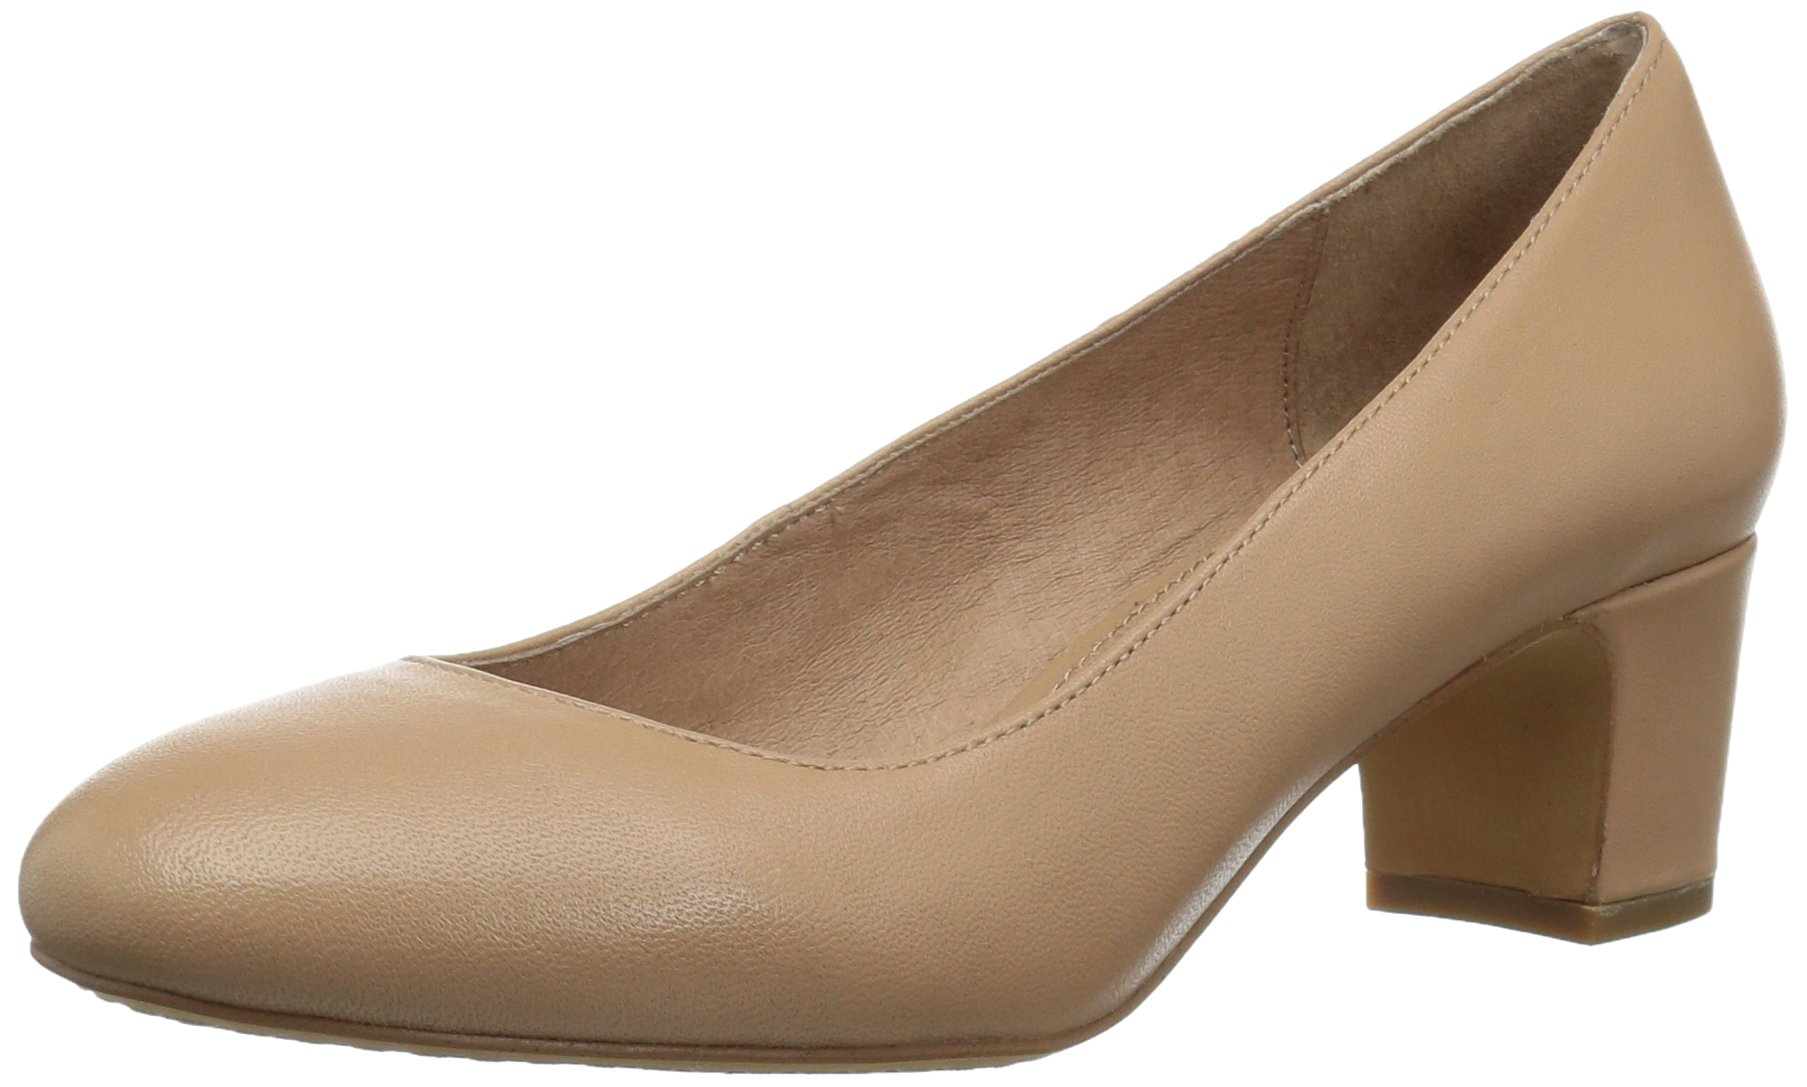 206 Collective Women's Merritt Round Toe Block Heel Low Pump, Neutral Leather, 10 B US